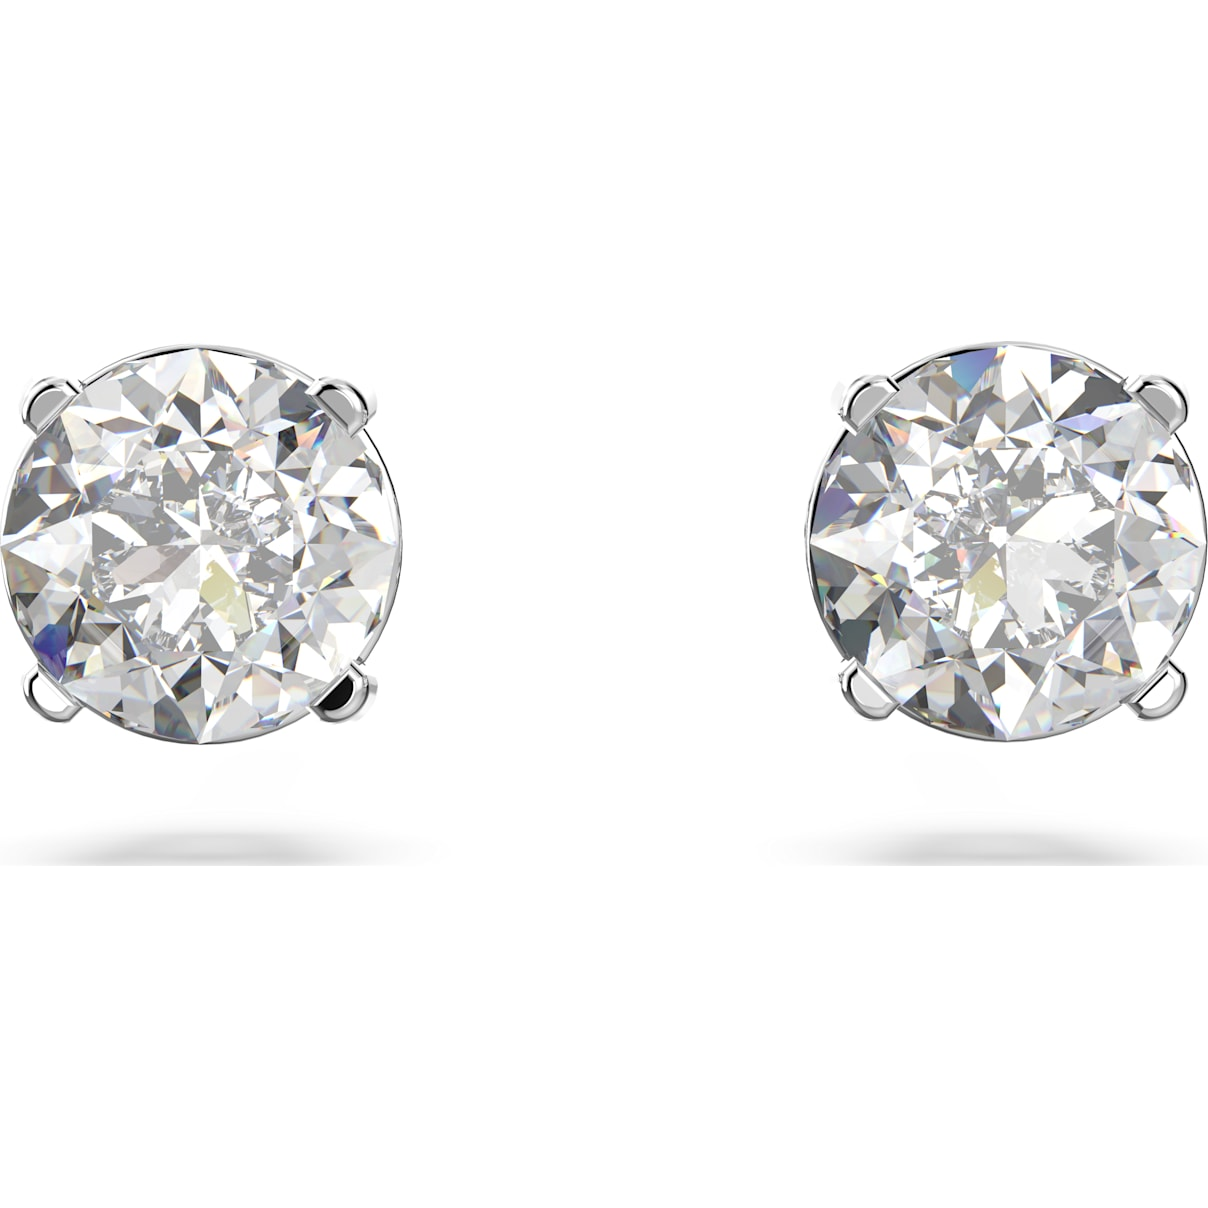 Swarovski Attract Round Pierced Earrings, White, Rhodium plated